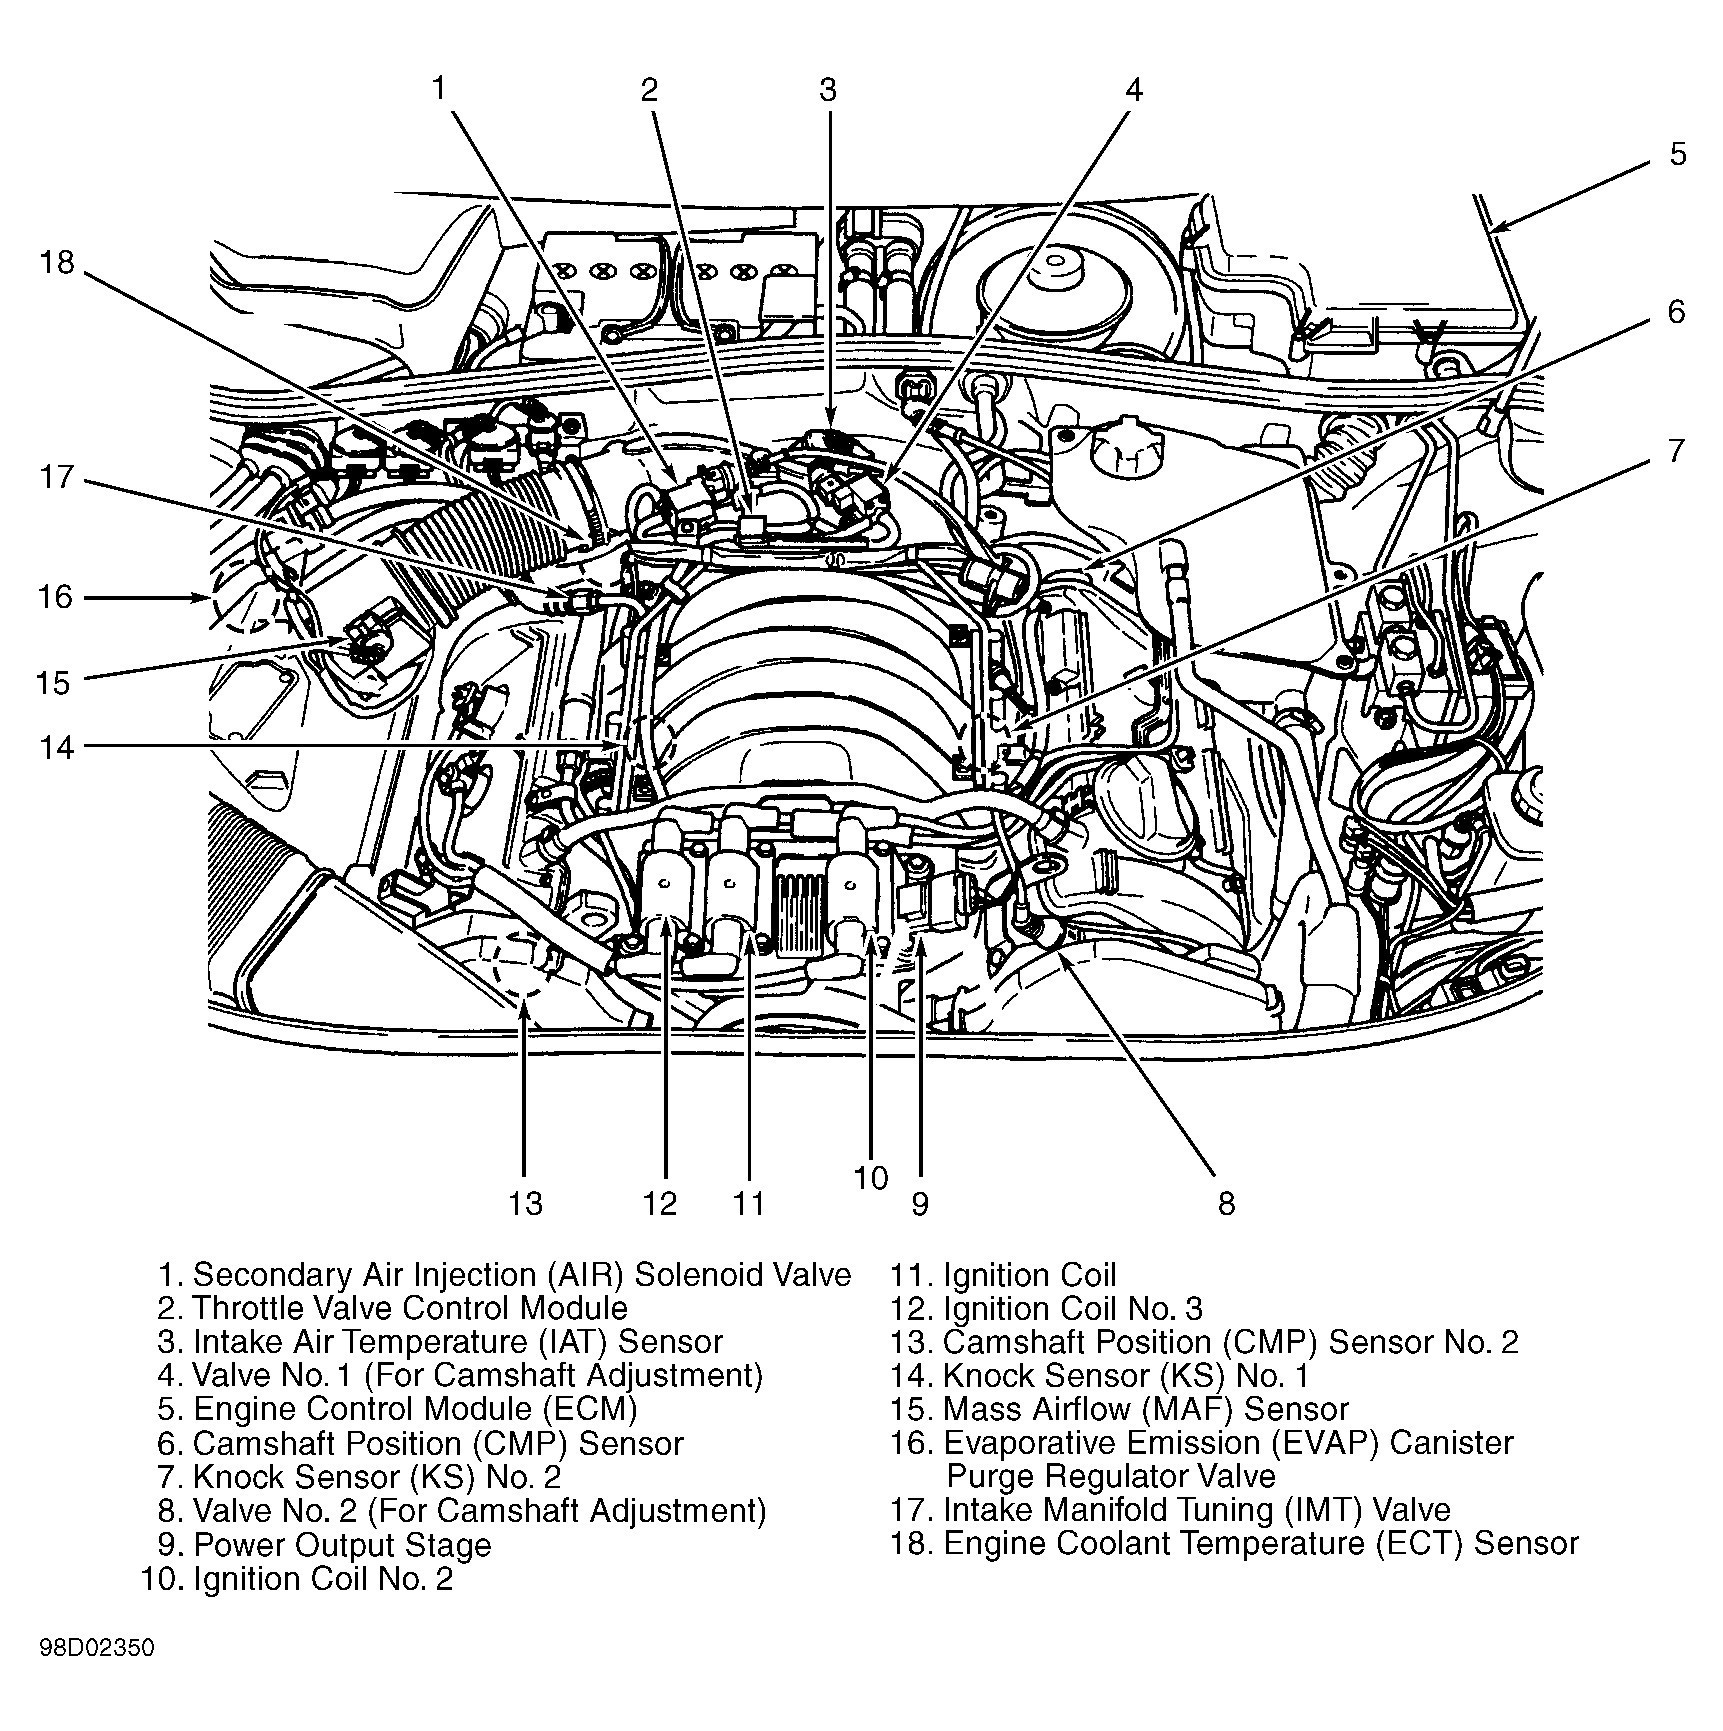 2000-dodge-intrepid-2-7-engine-diagram-dodge-